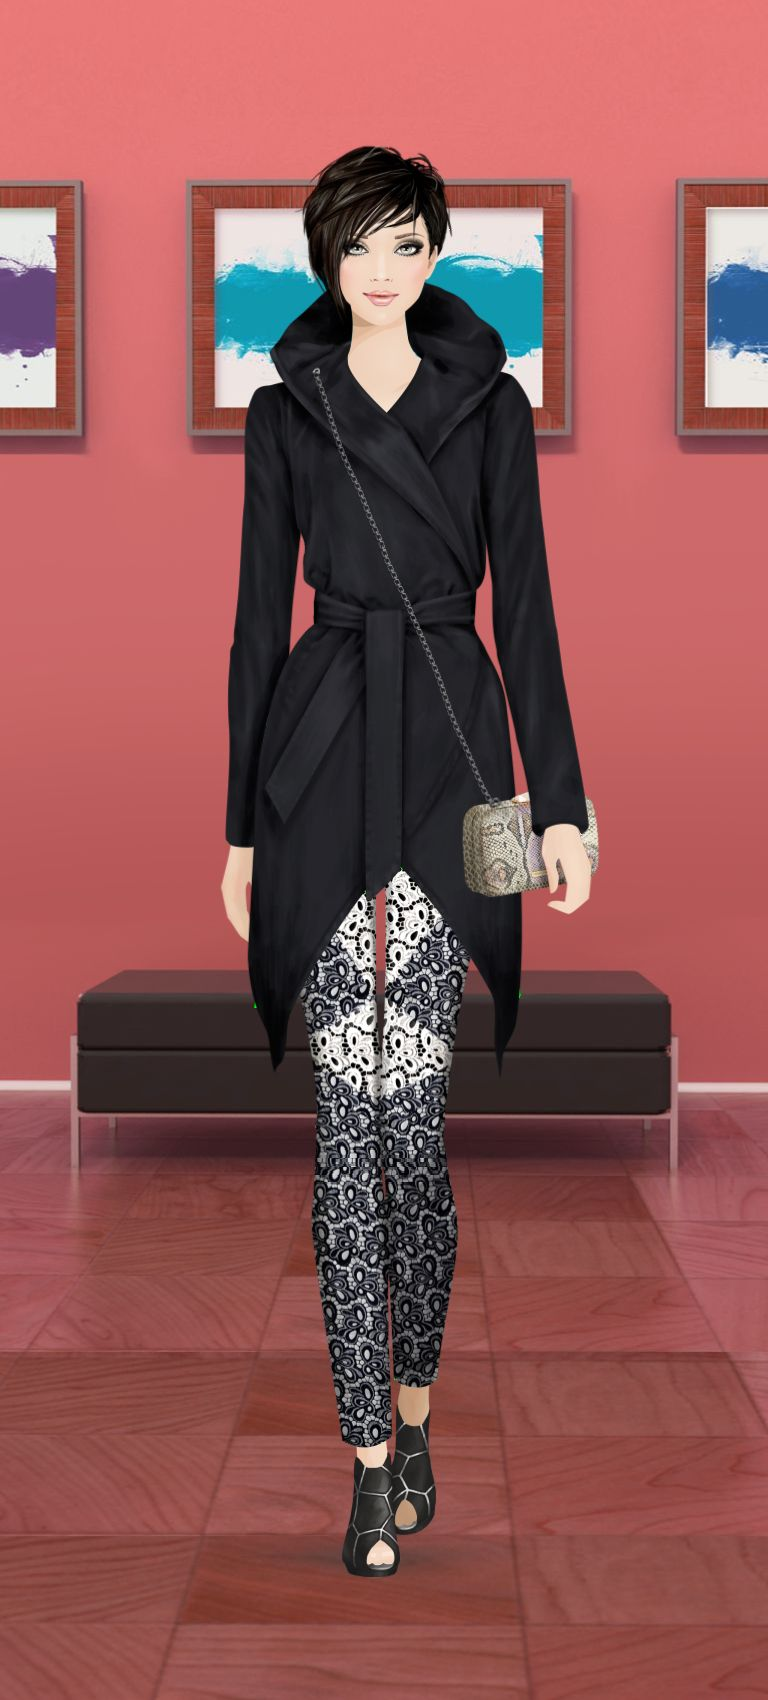 Look styled in Covet Fashion La Marque Jacket Rebecca Minkoff Pants Rebecca Minkoff bag United Nude Shoe